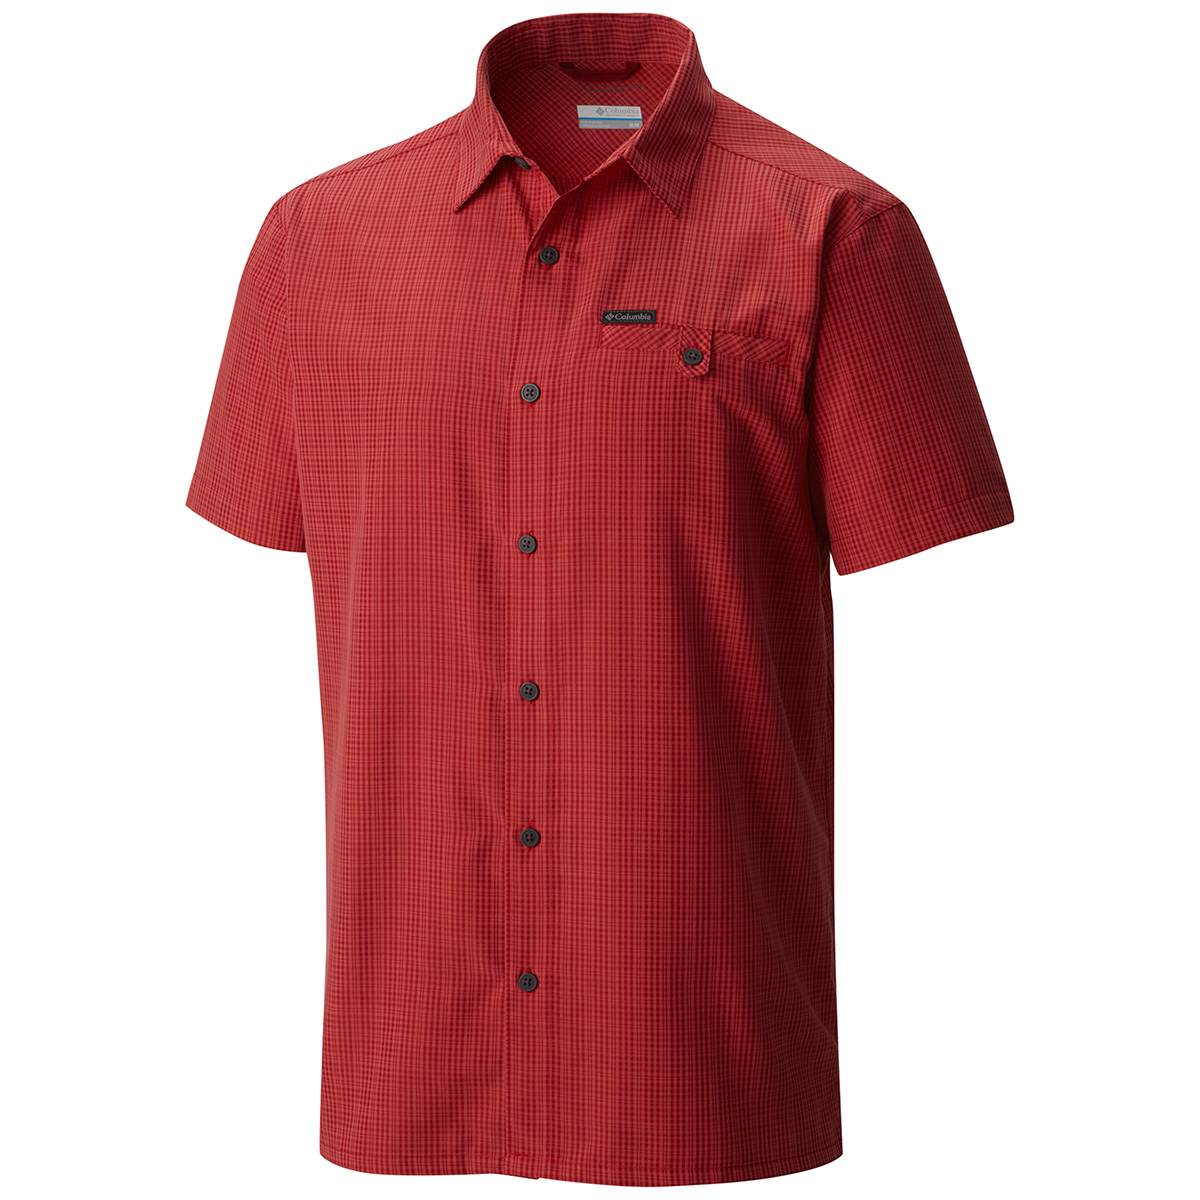 Columbia declination trail ii short sleeve shirt How to sell shirts